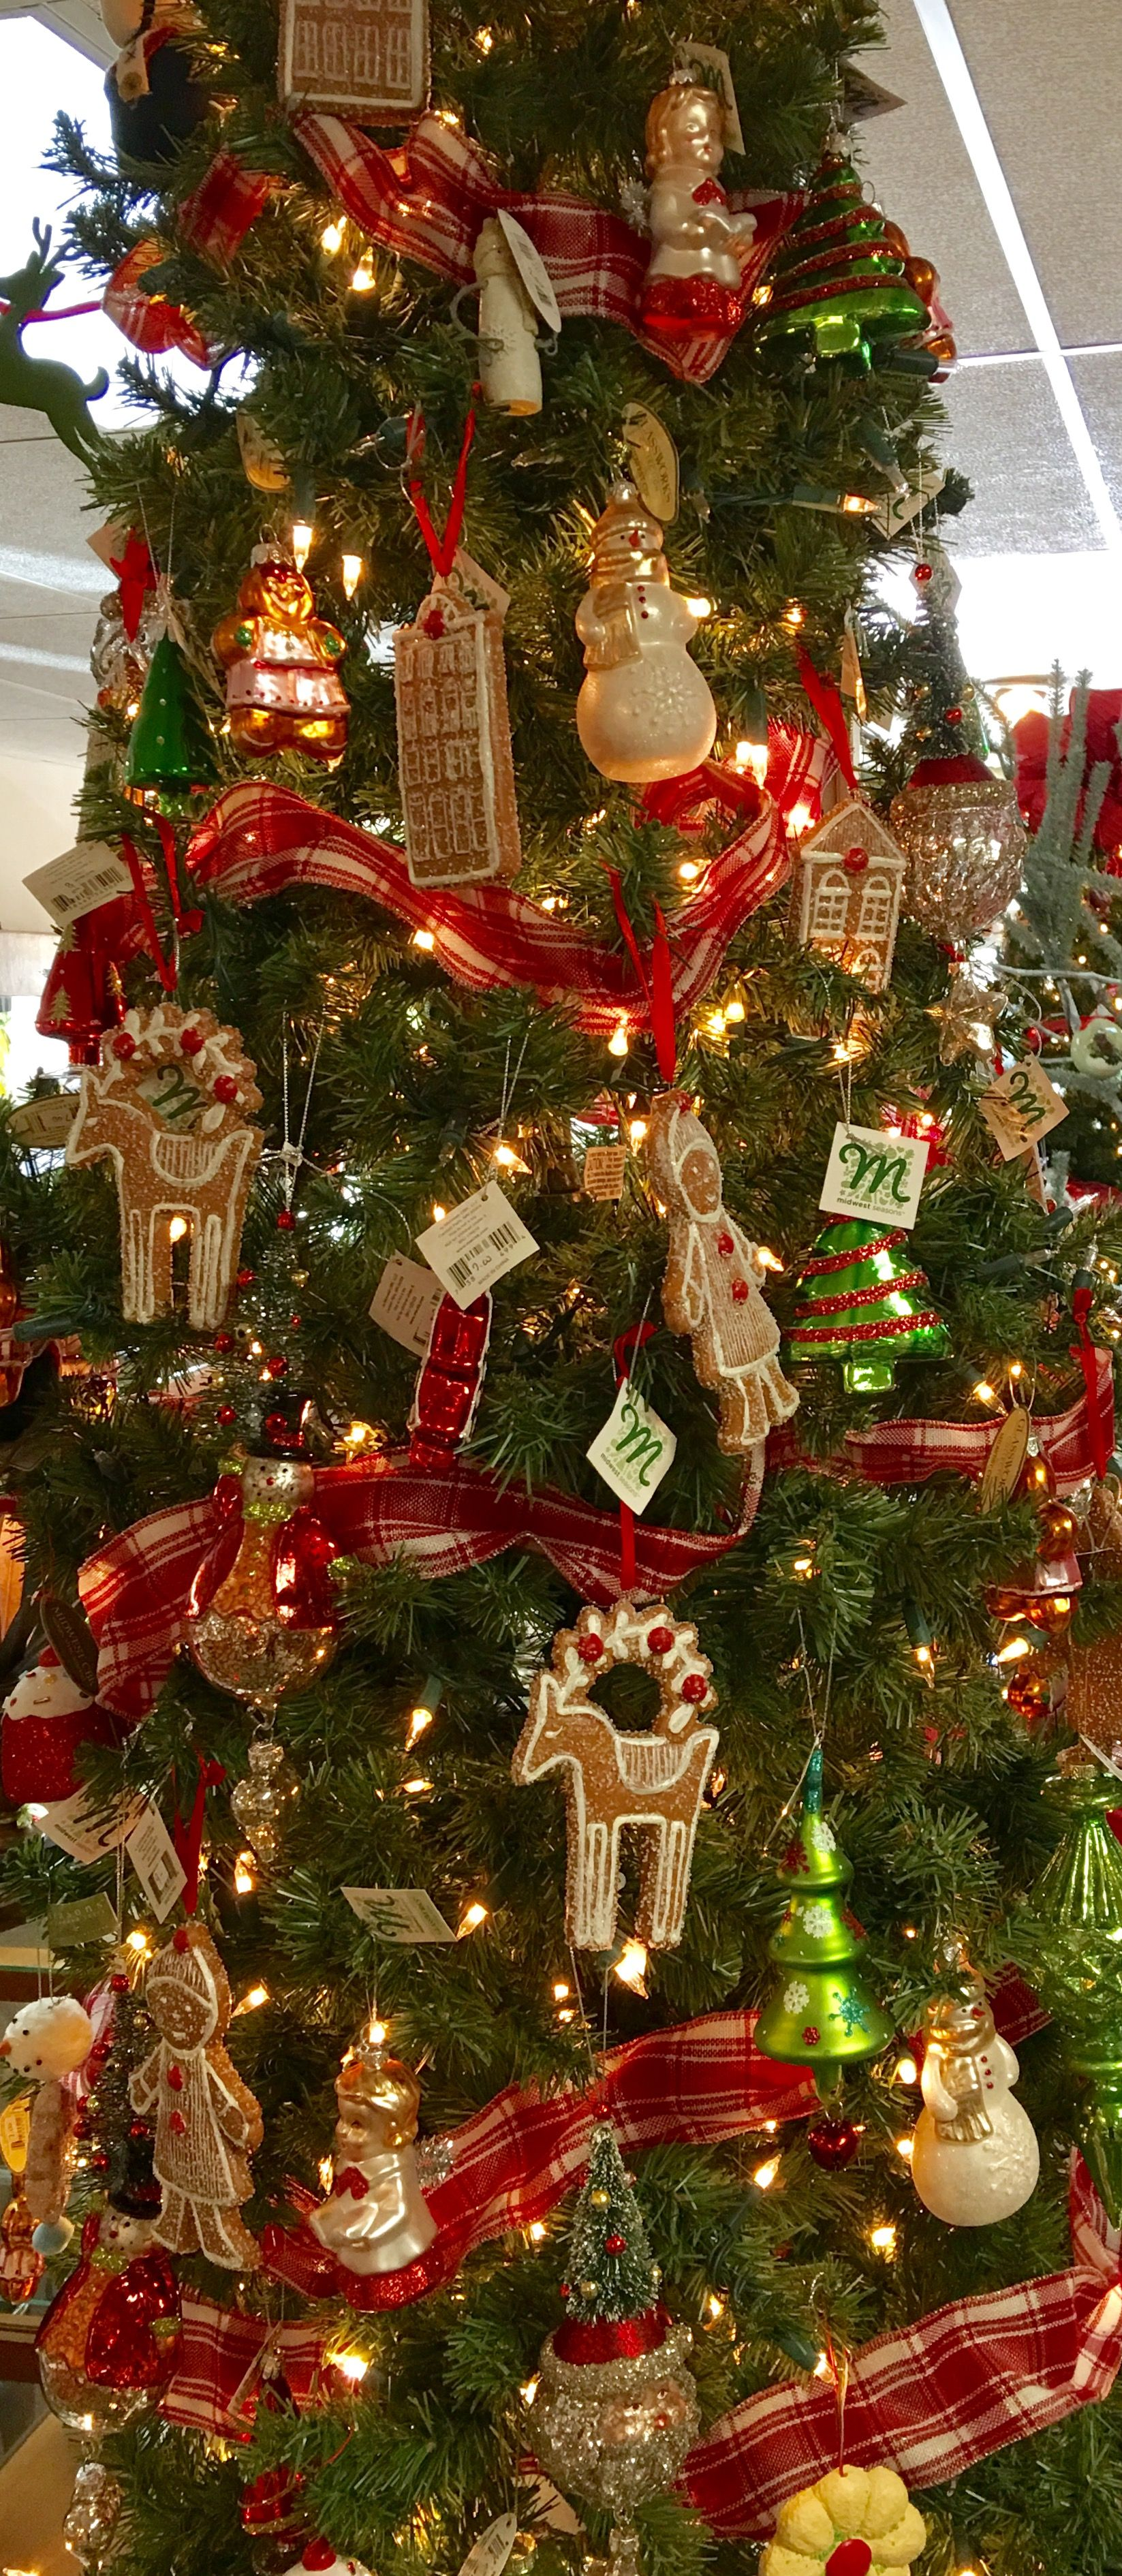 Our vintage inspired tree is filled with wonderful